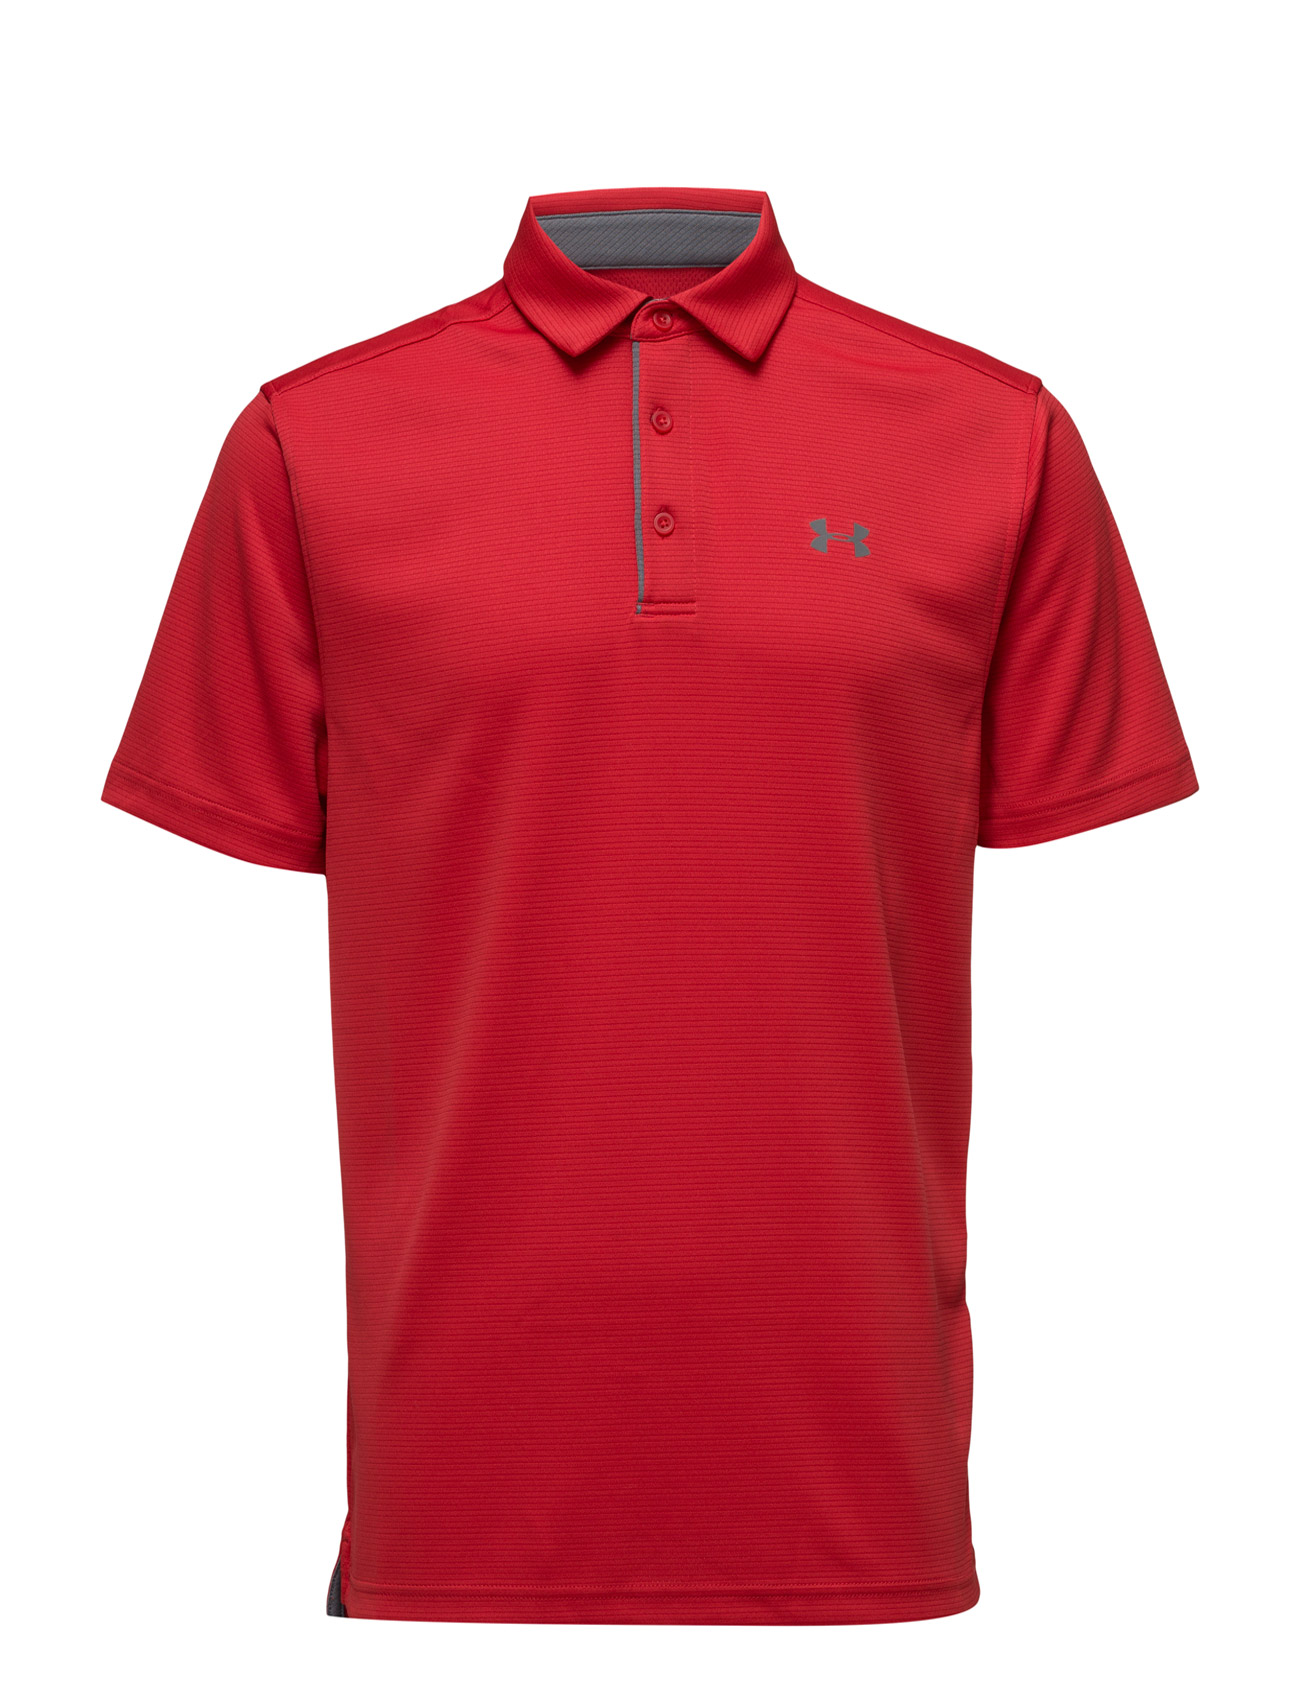 Tech Polo Under Armour Golf polo t-shirts til Herrer i hvid